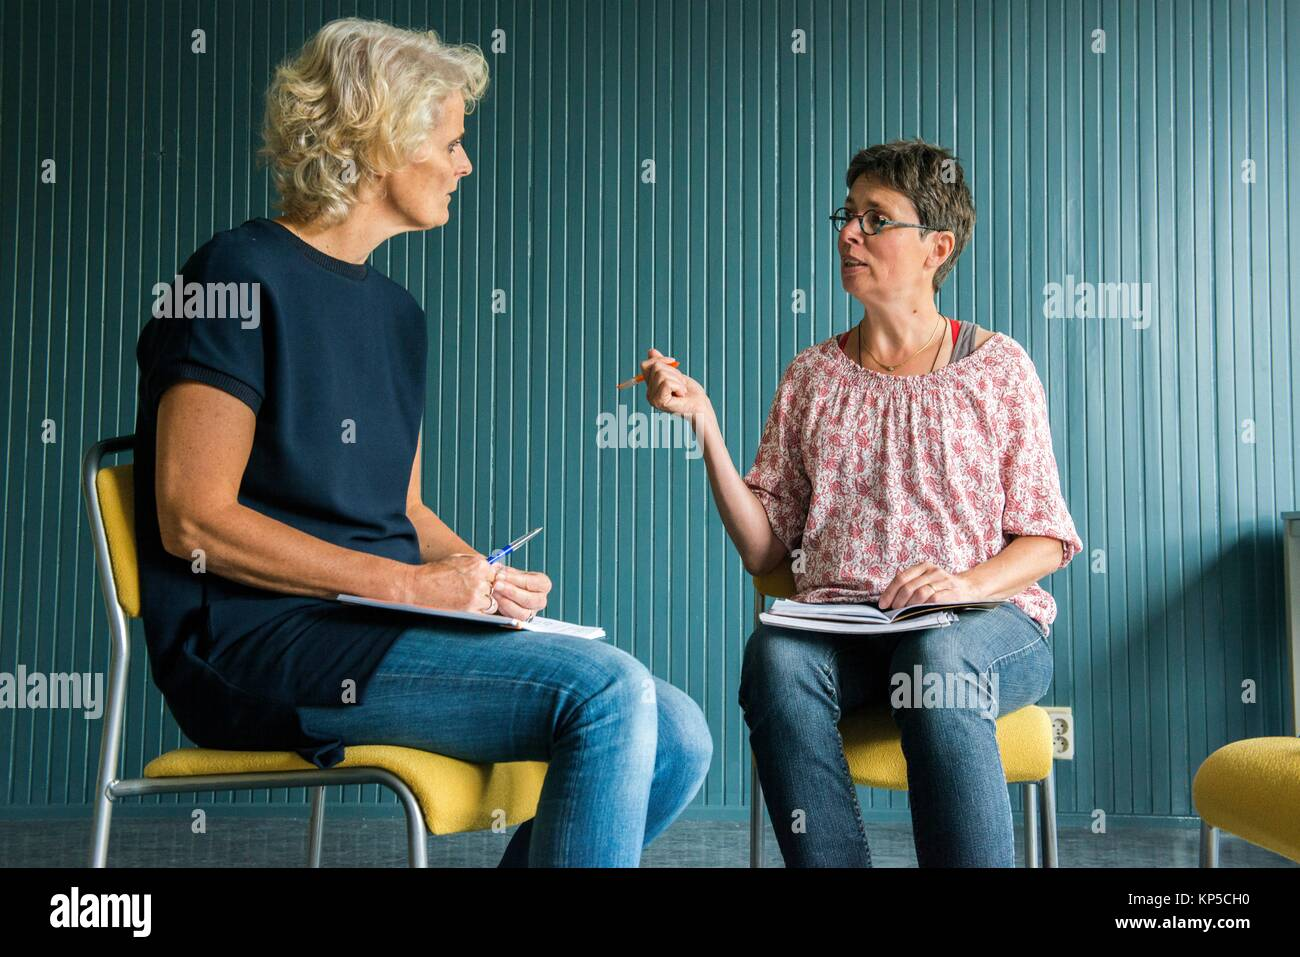 Tilburg, Netherlands. Mature adult woman having a coaching interview while searching for a new job and occupation. - Stock Image